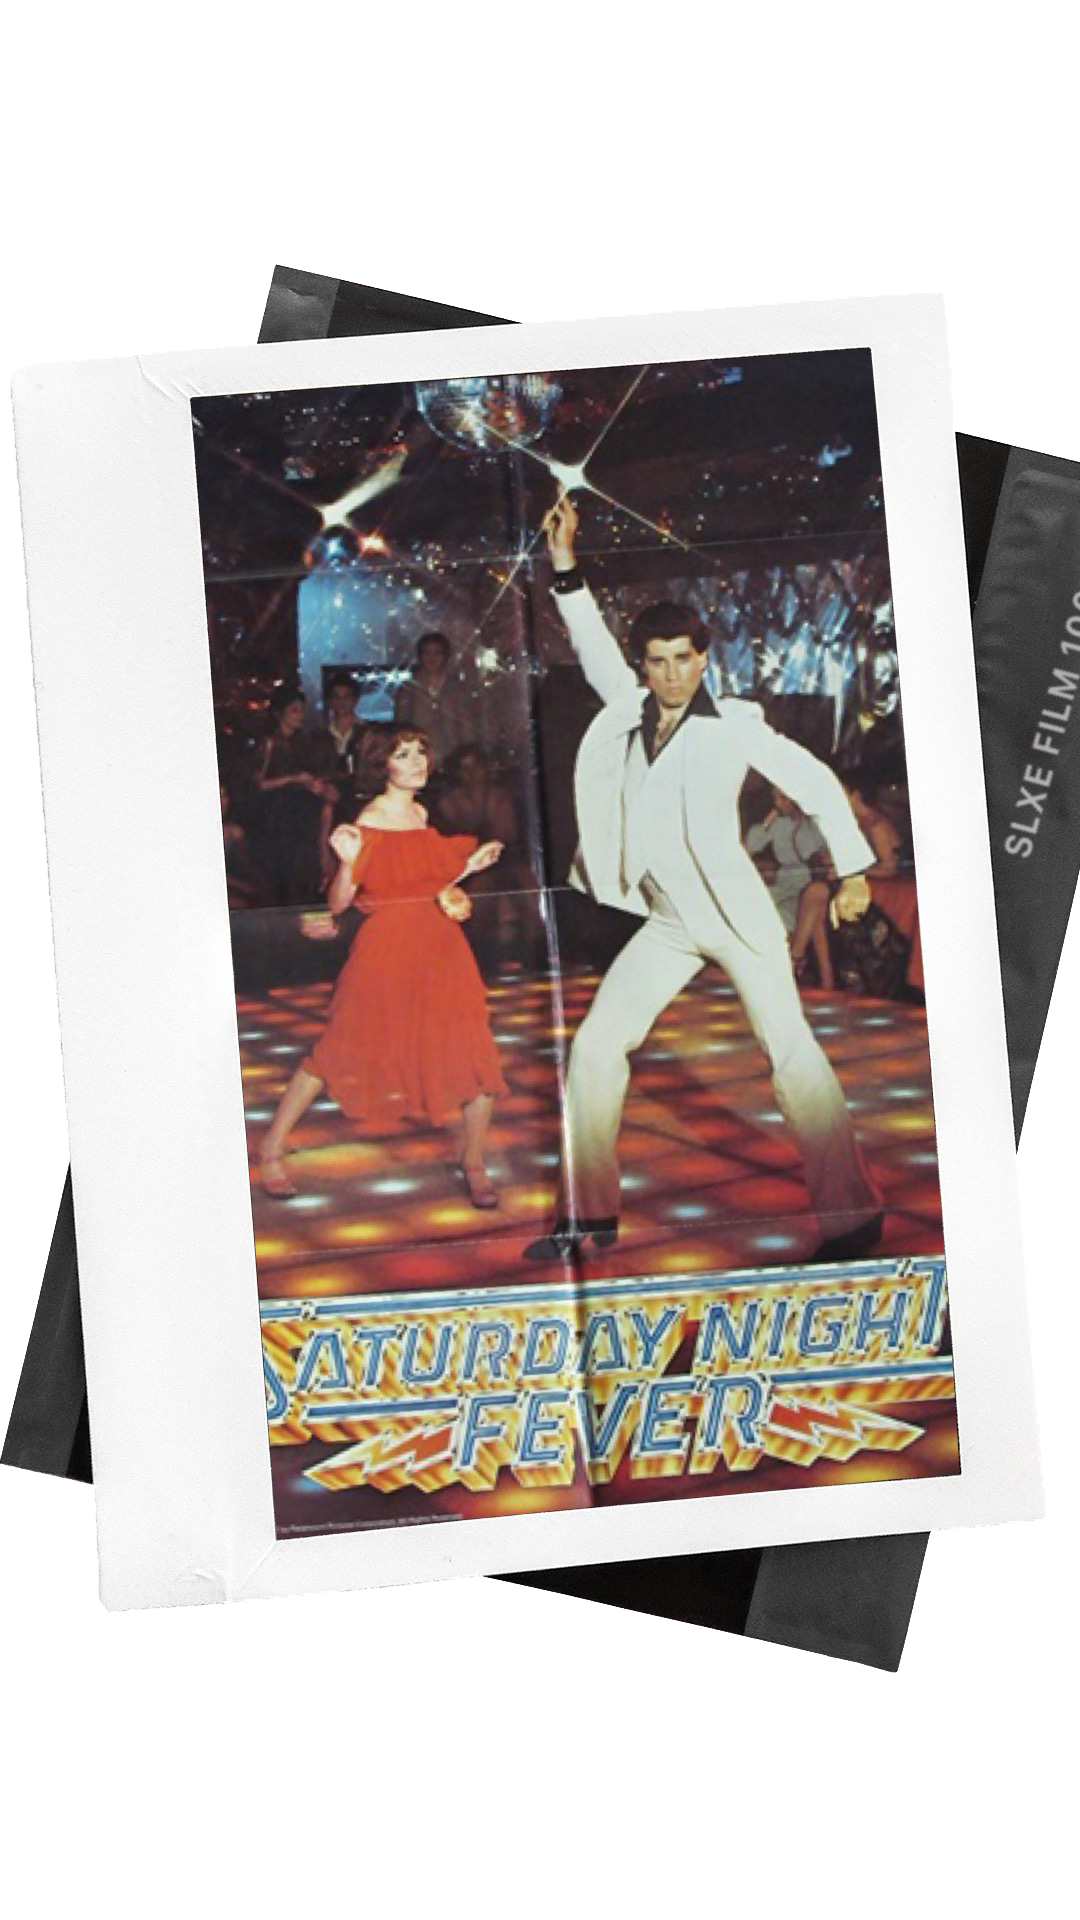 Saturday Night Fever (a classic) - It can be easily said that Saturday Night Fever is the movie that heavily popularised disco music and culture around the world. Most notably, John Travolta's moves on the iconic illuminated dance floor in the white suit helped in making the movie a must-watch classic. Aside from the iconic scenes, Saturday Night Fever is a drama. It tells the story of a working-class young man who escapes to his local discotheque during the weekends. The discotheque helps him in coping with the harsh realities of his own life.